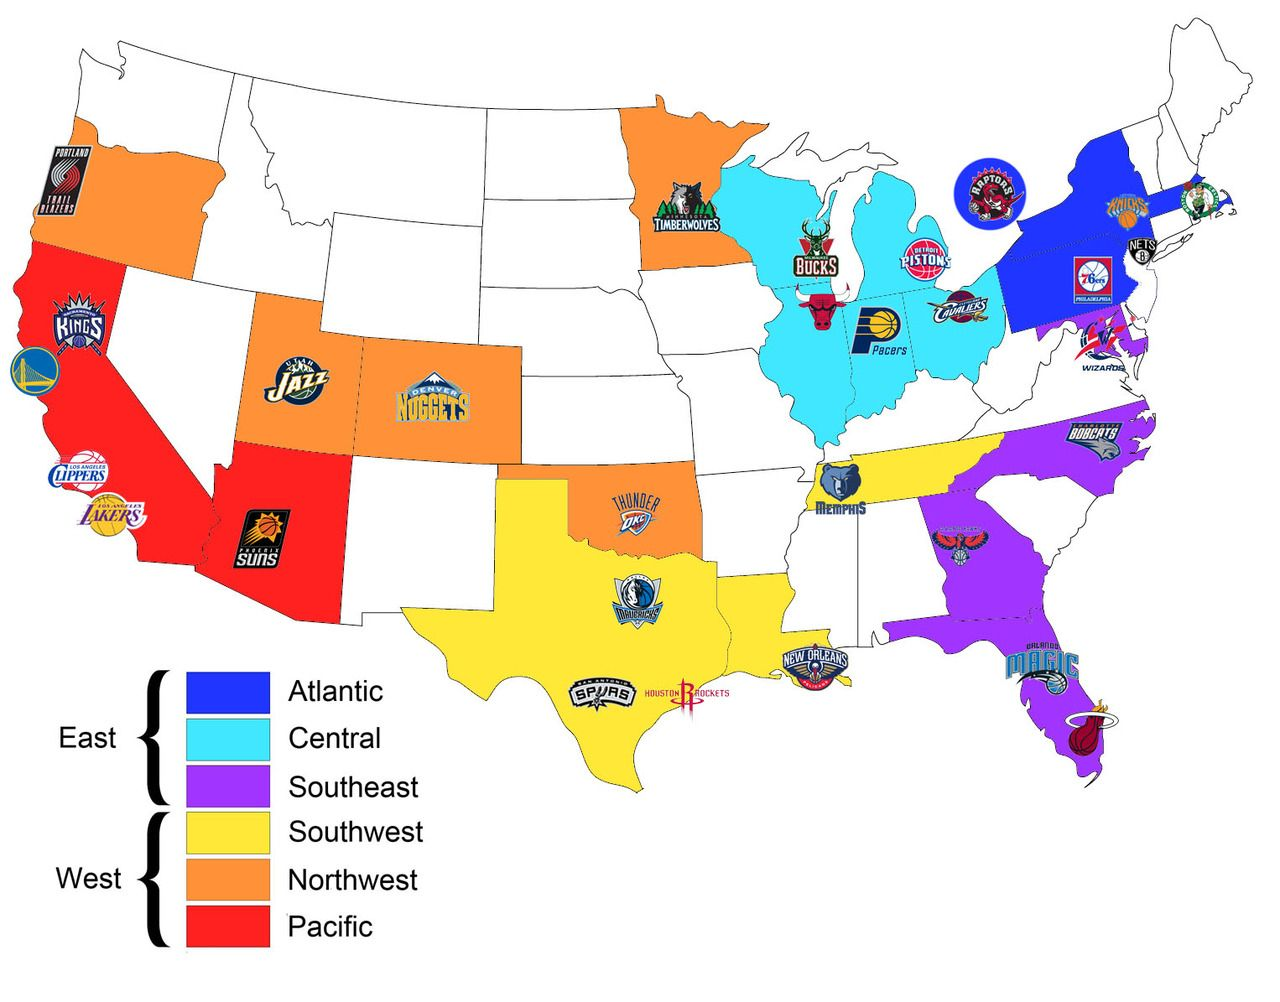 Map of all the NBA teams organised by conference and geographical division  @Amanda Woodard for